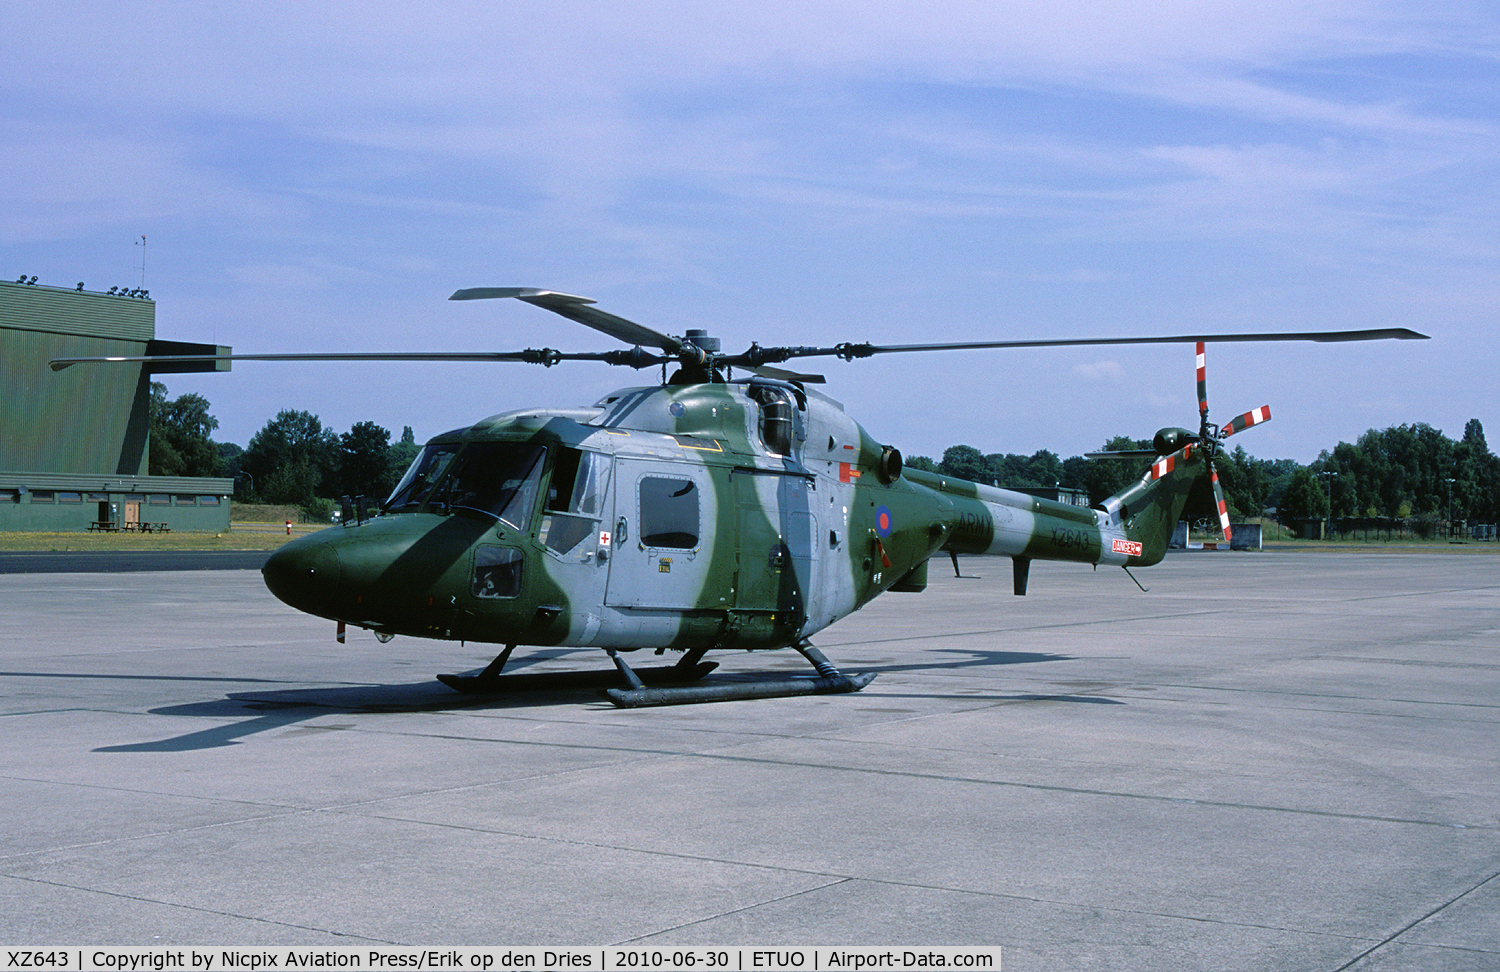 XZ643, 1980 Westland Lynx AH.7 C/N 178, Gutersloh, Germany, based 1 Regiment Army Air Corps operates the Lynx AH.7. XZ643 is seen here on the ramp of its' homebase.